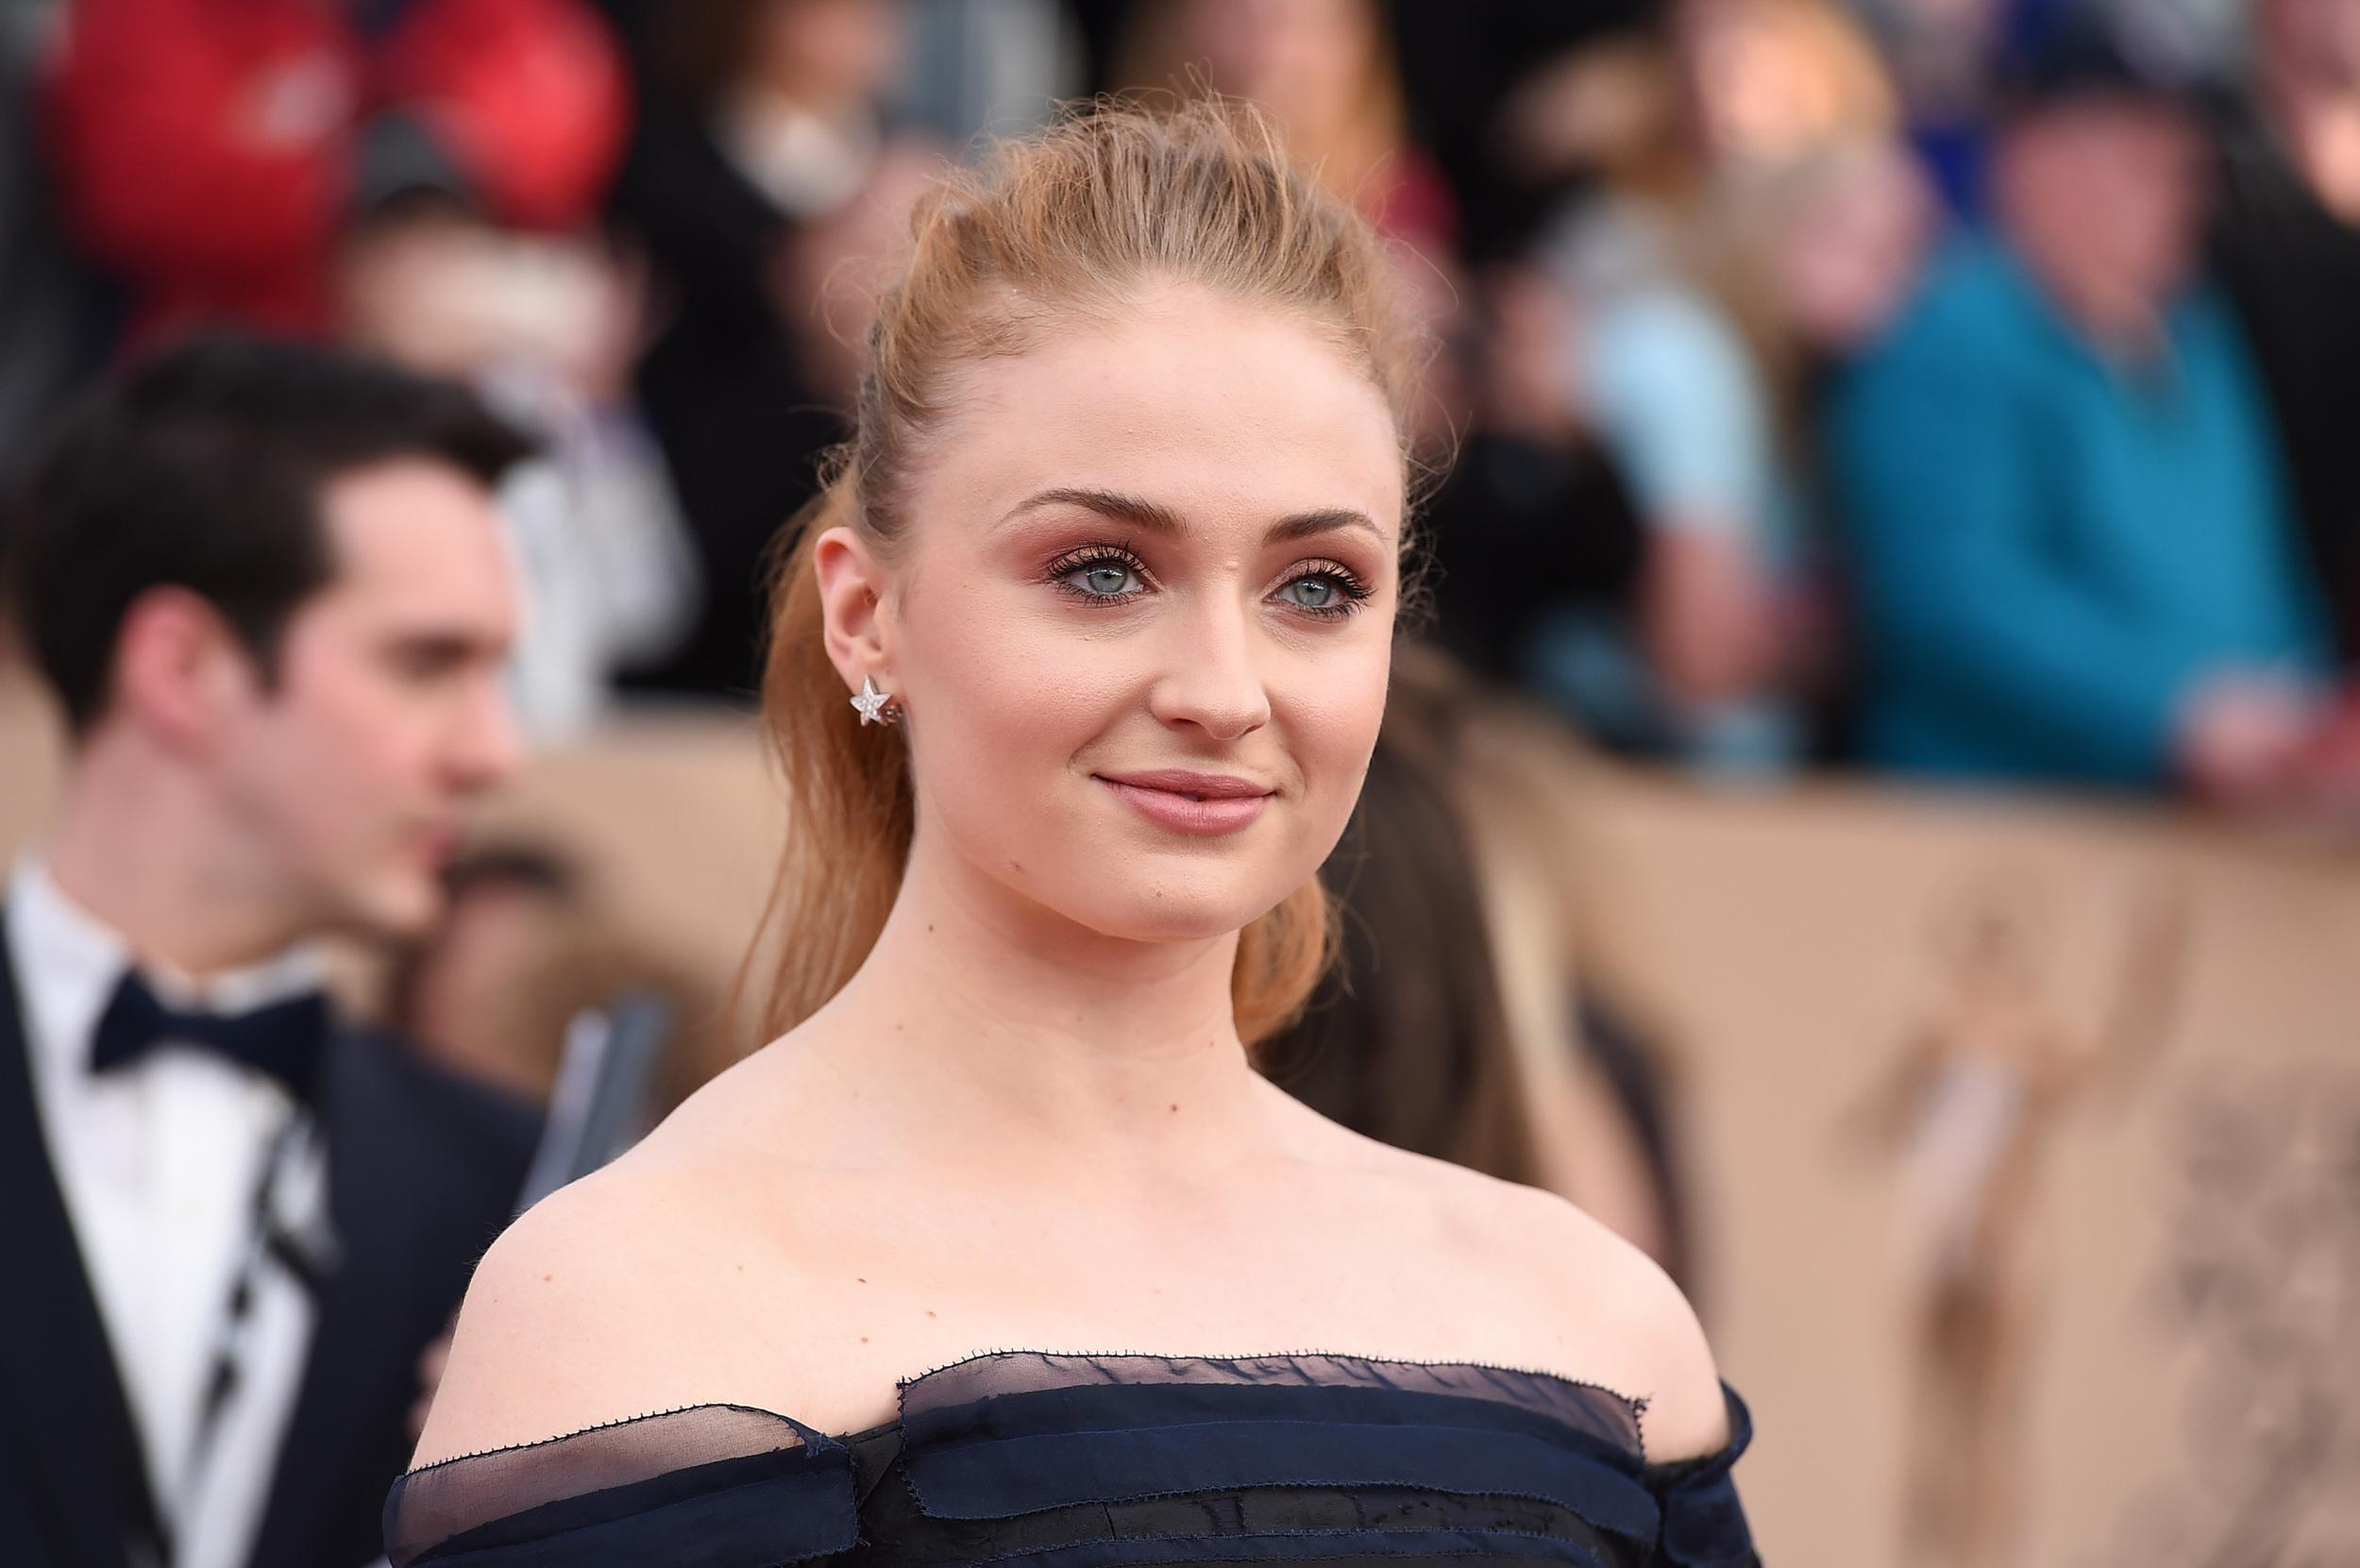 Sophie Turner arrives at the 22nd annual Screen Actors Guild Awards at the Shrine Auditorium & Expo Hall on Saturday, Jan. 30, 2016, in Los Angeles. (Photo by Jordan Strauss/Invision/AP)